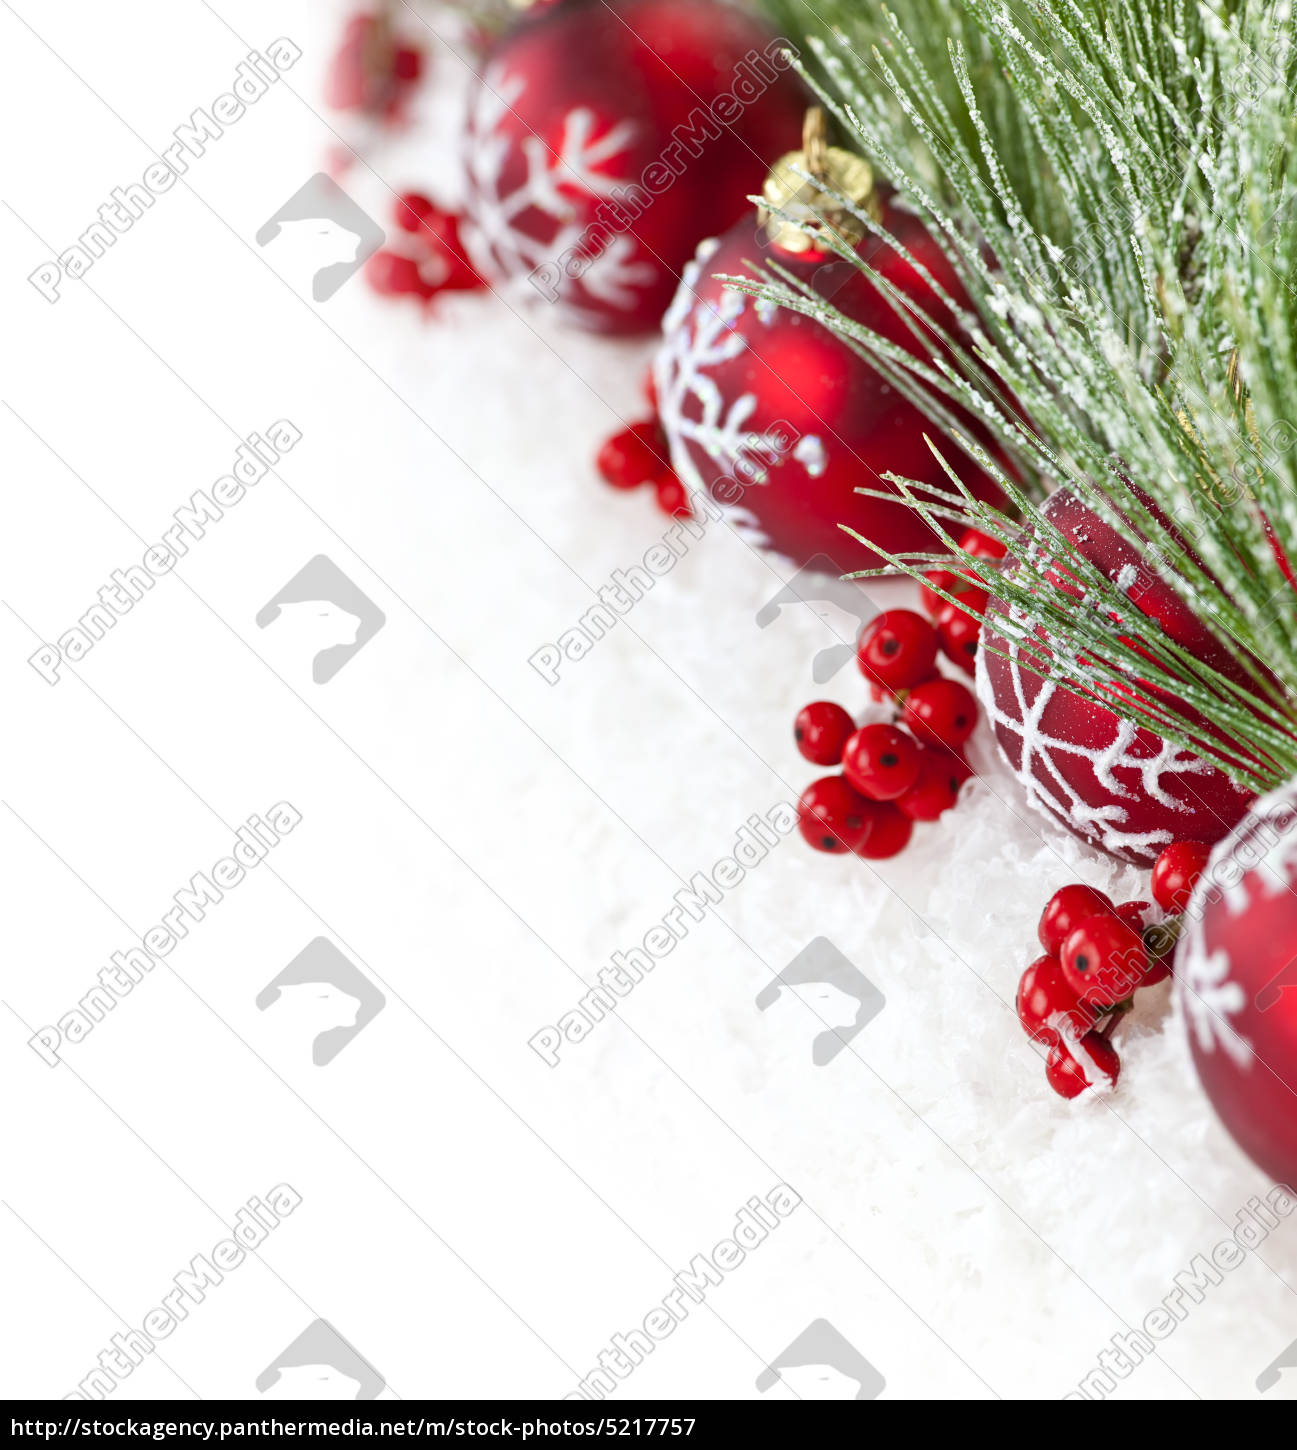 Stock Photo 5217757 Red Christmas Ornaments Border